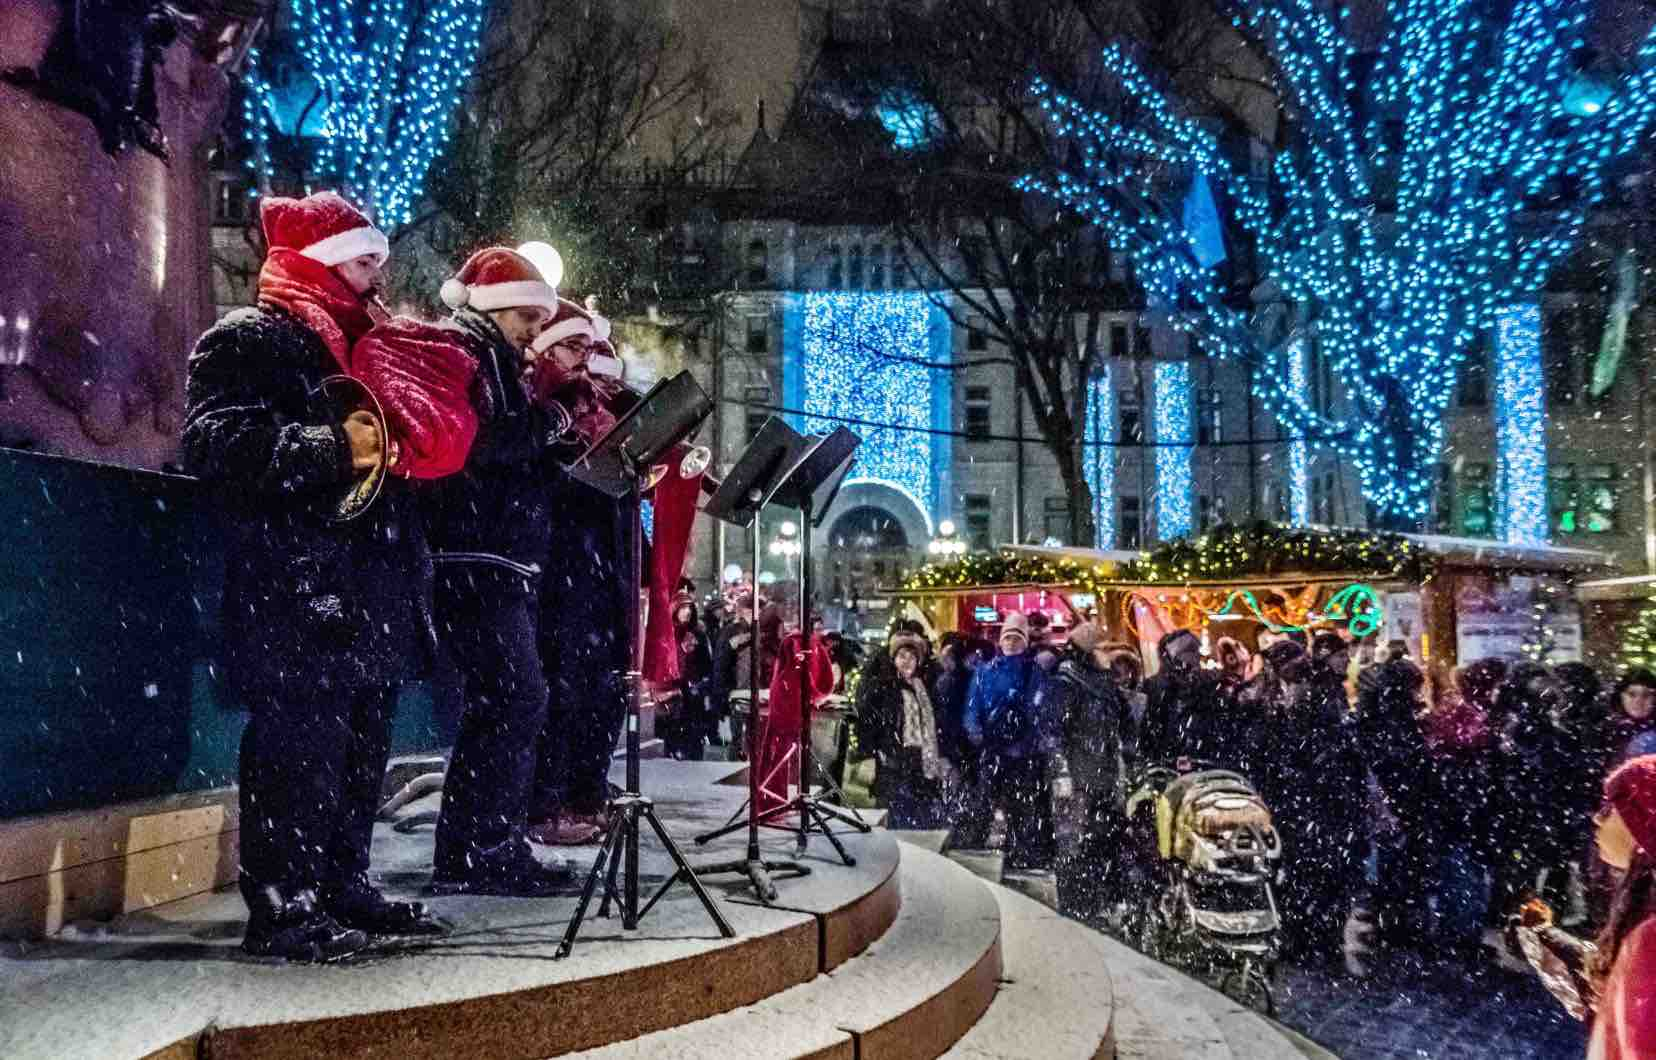 Quebec Christmas 2020 14+ Amazing Things to Do in Quebec City This Christmas and Holiday